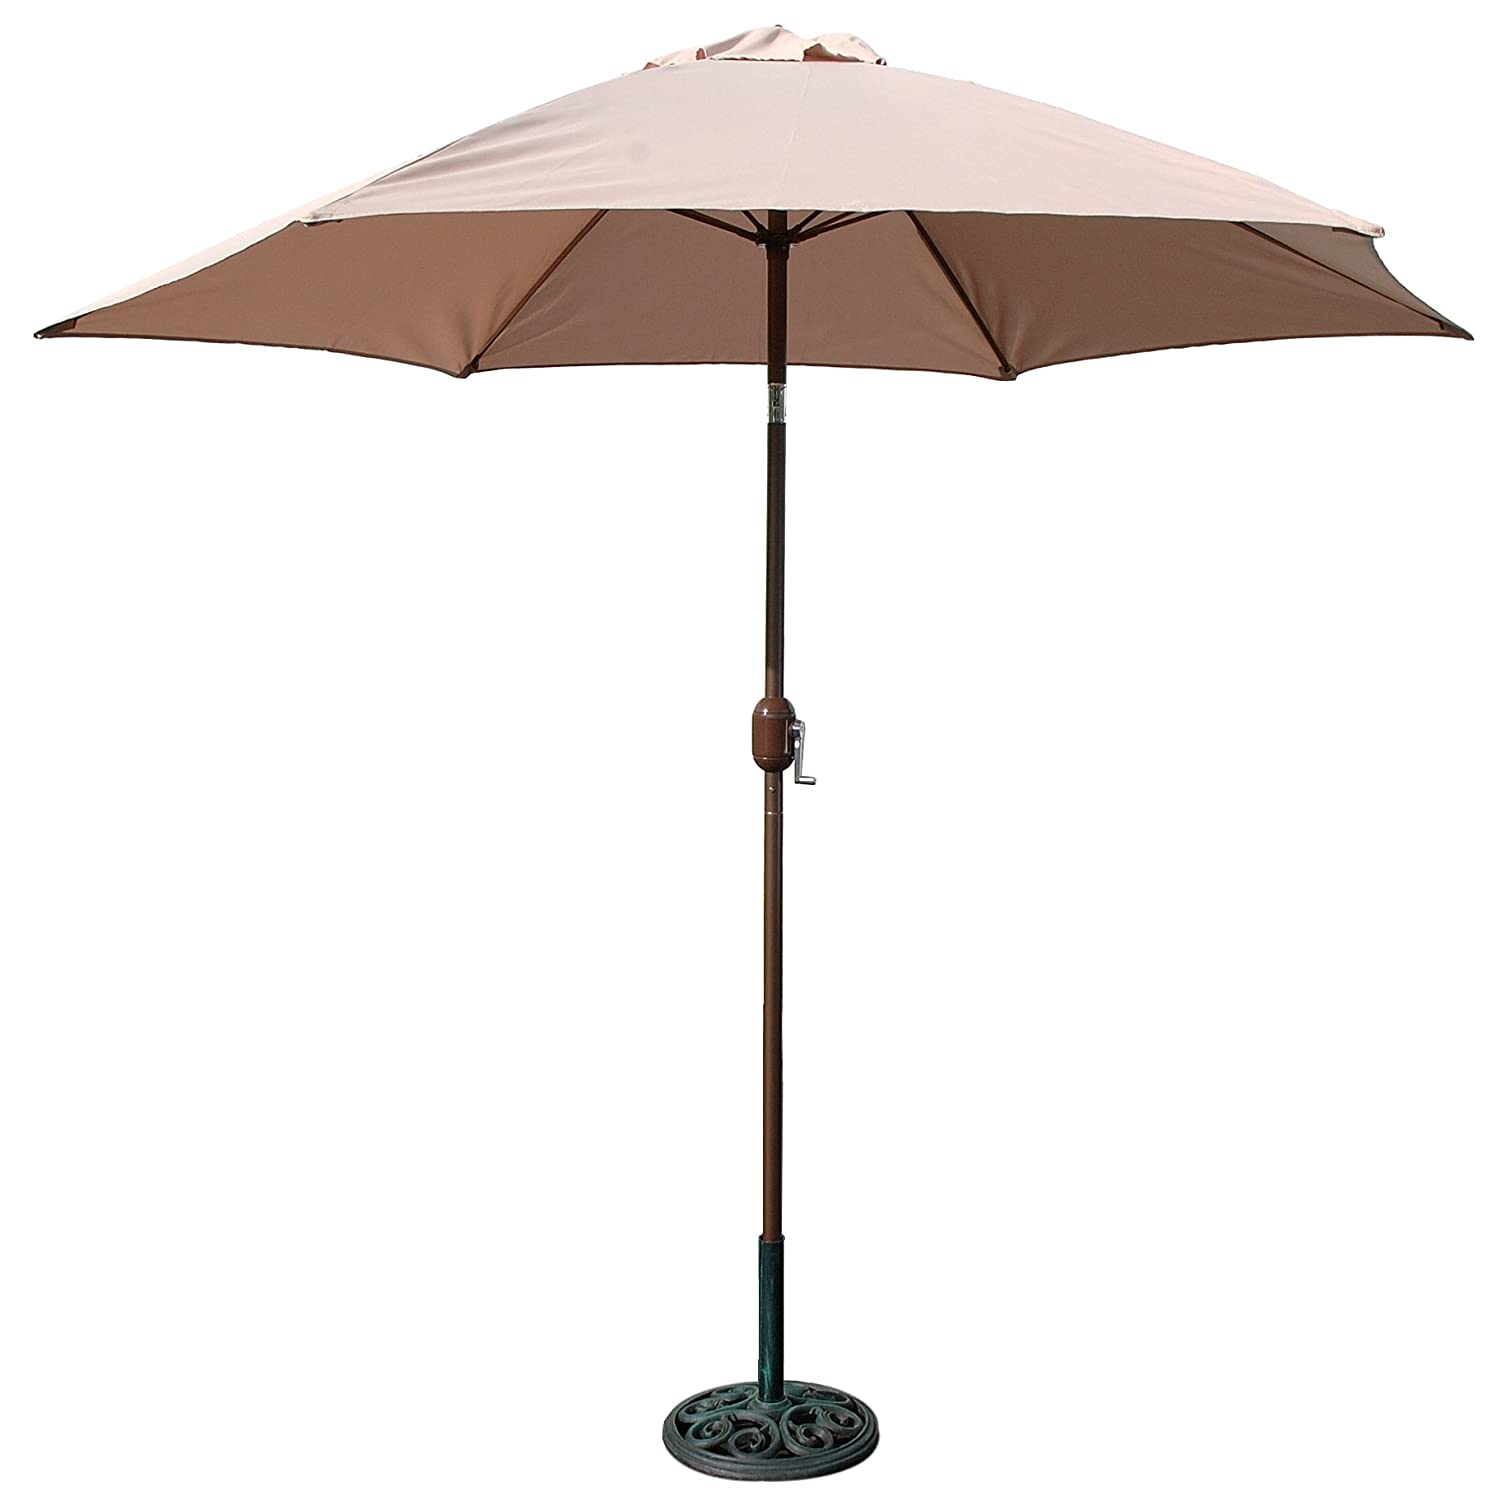 Outdoor Shade Umbrella Patio Market Outdoor Pool Yard Beach Shade Umbrella Canopy